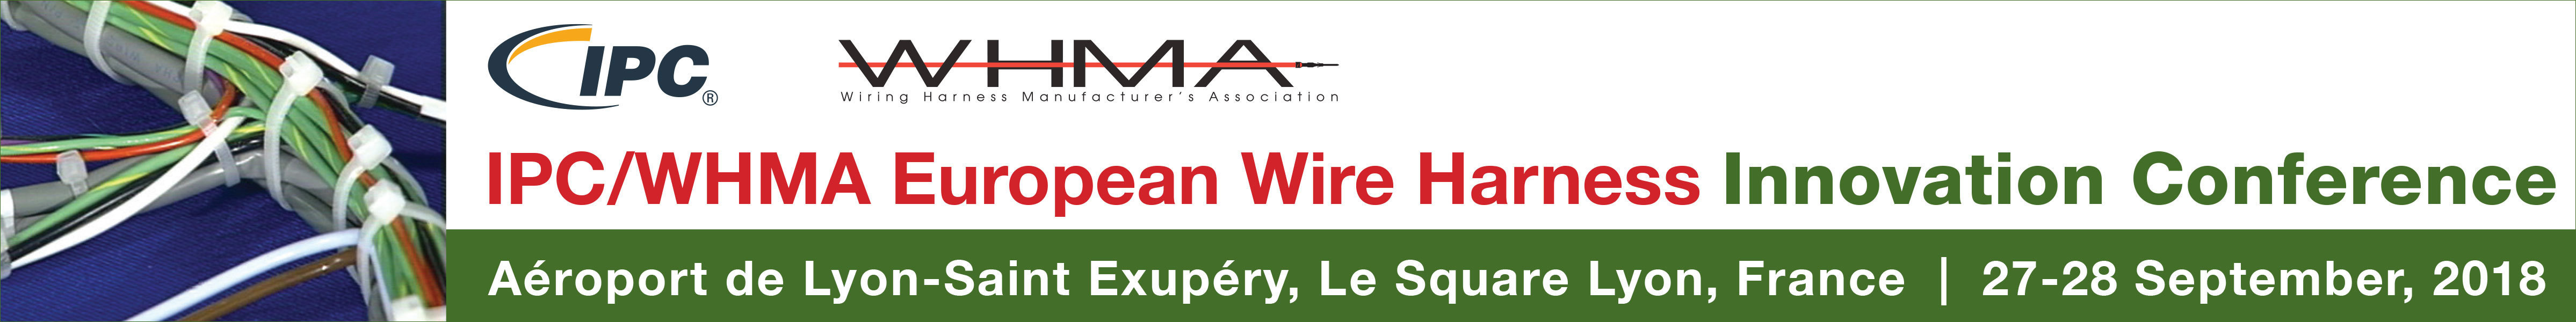 IPC/WHMA Wire Harness Innovation Conference